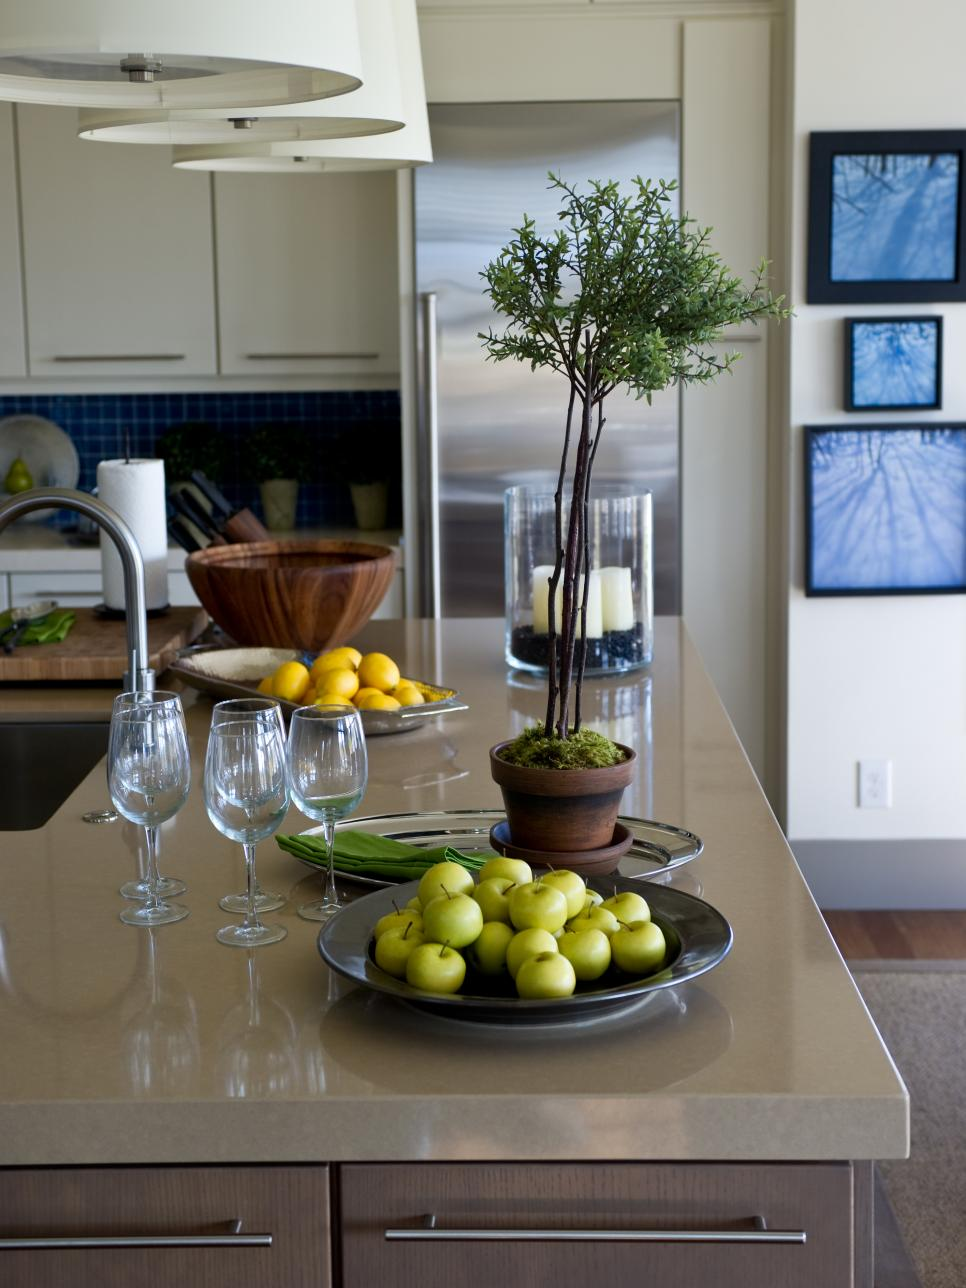 HGTV Dream Home 2012 Kitchen | Pictures And Video From HGTV Dream Home 2012  | HGTV